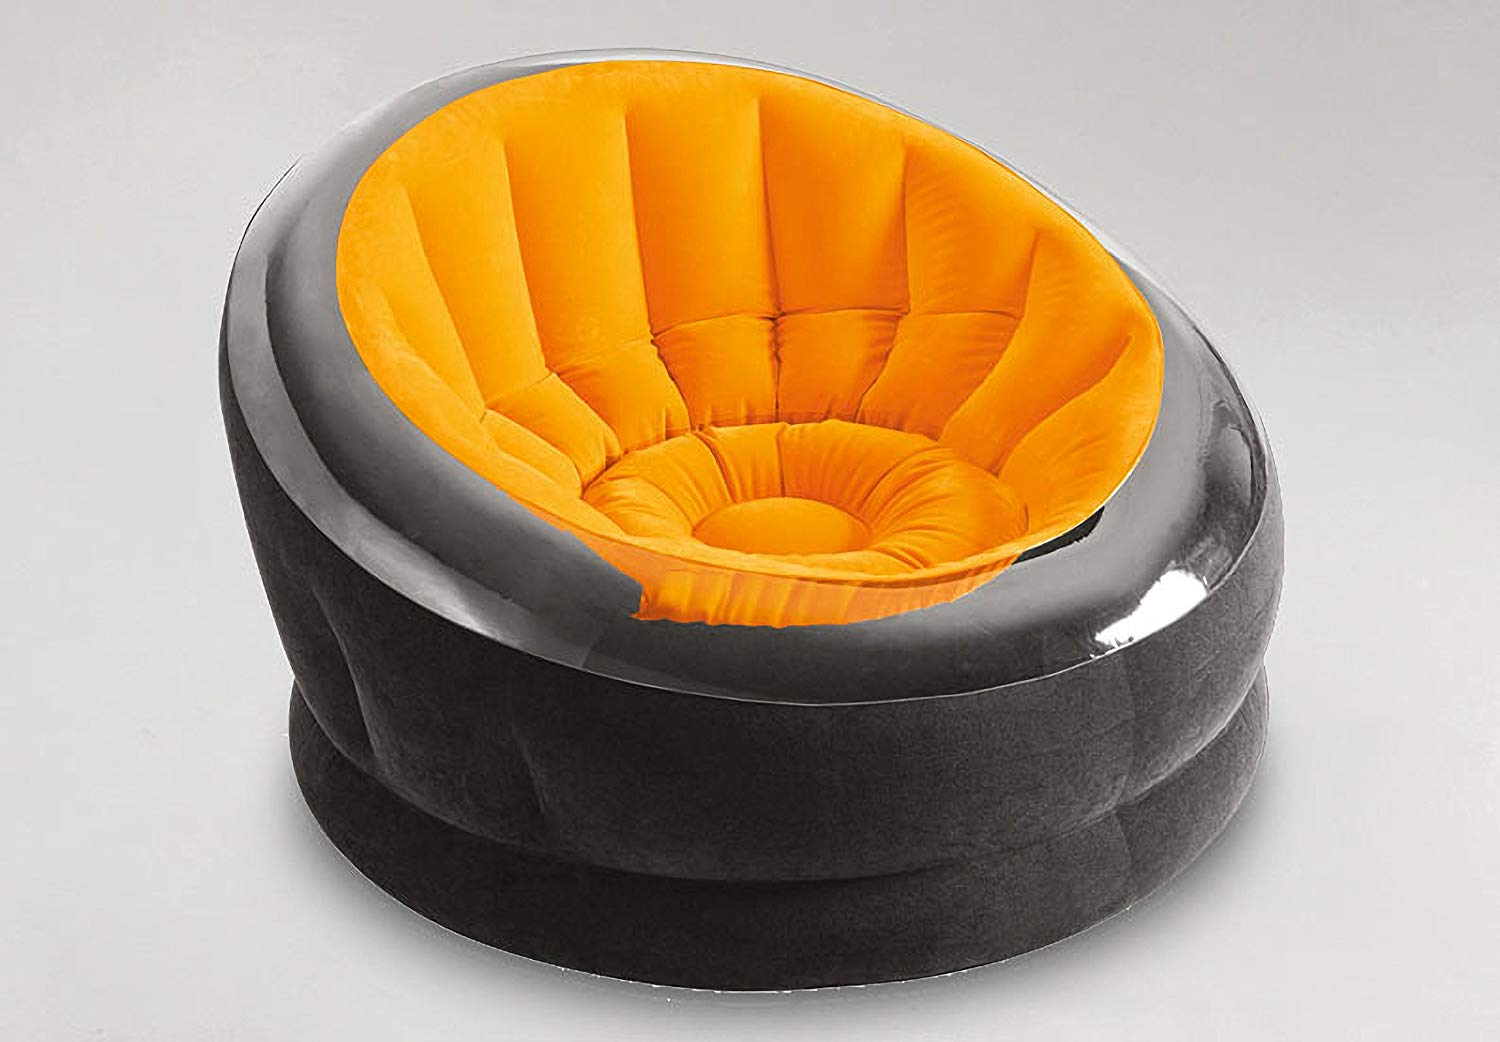 Lot 26 - Intex POLTRONA EMPIRE inflatable lounge chair